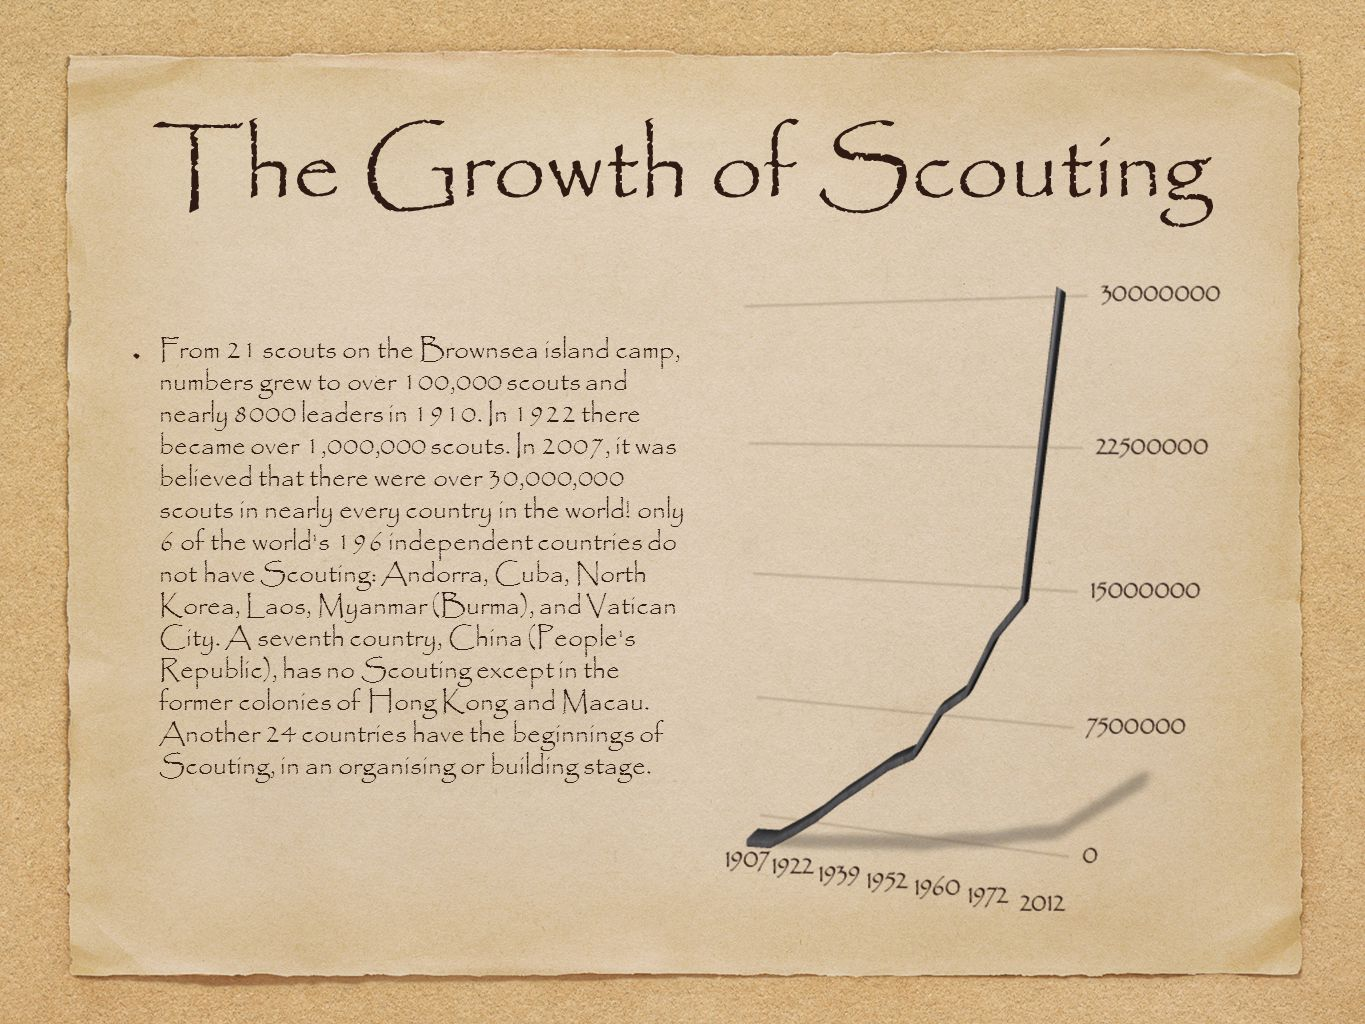 The Growth of Scouting From 21 scouts on the Brownsea island camp, numbers grew to over 100,000 scouts and nearly 8000 leaders in 1910.